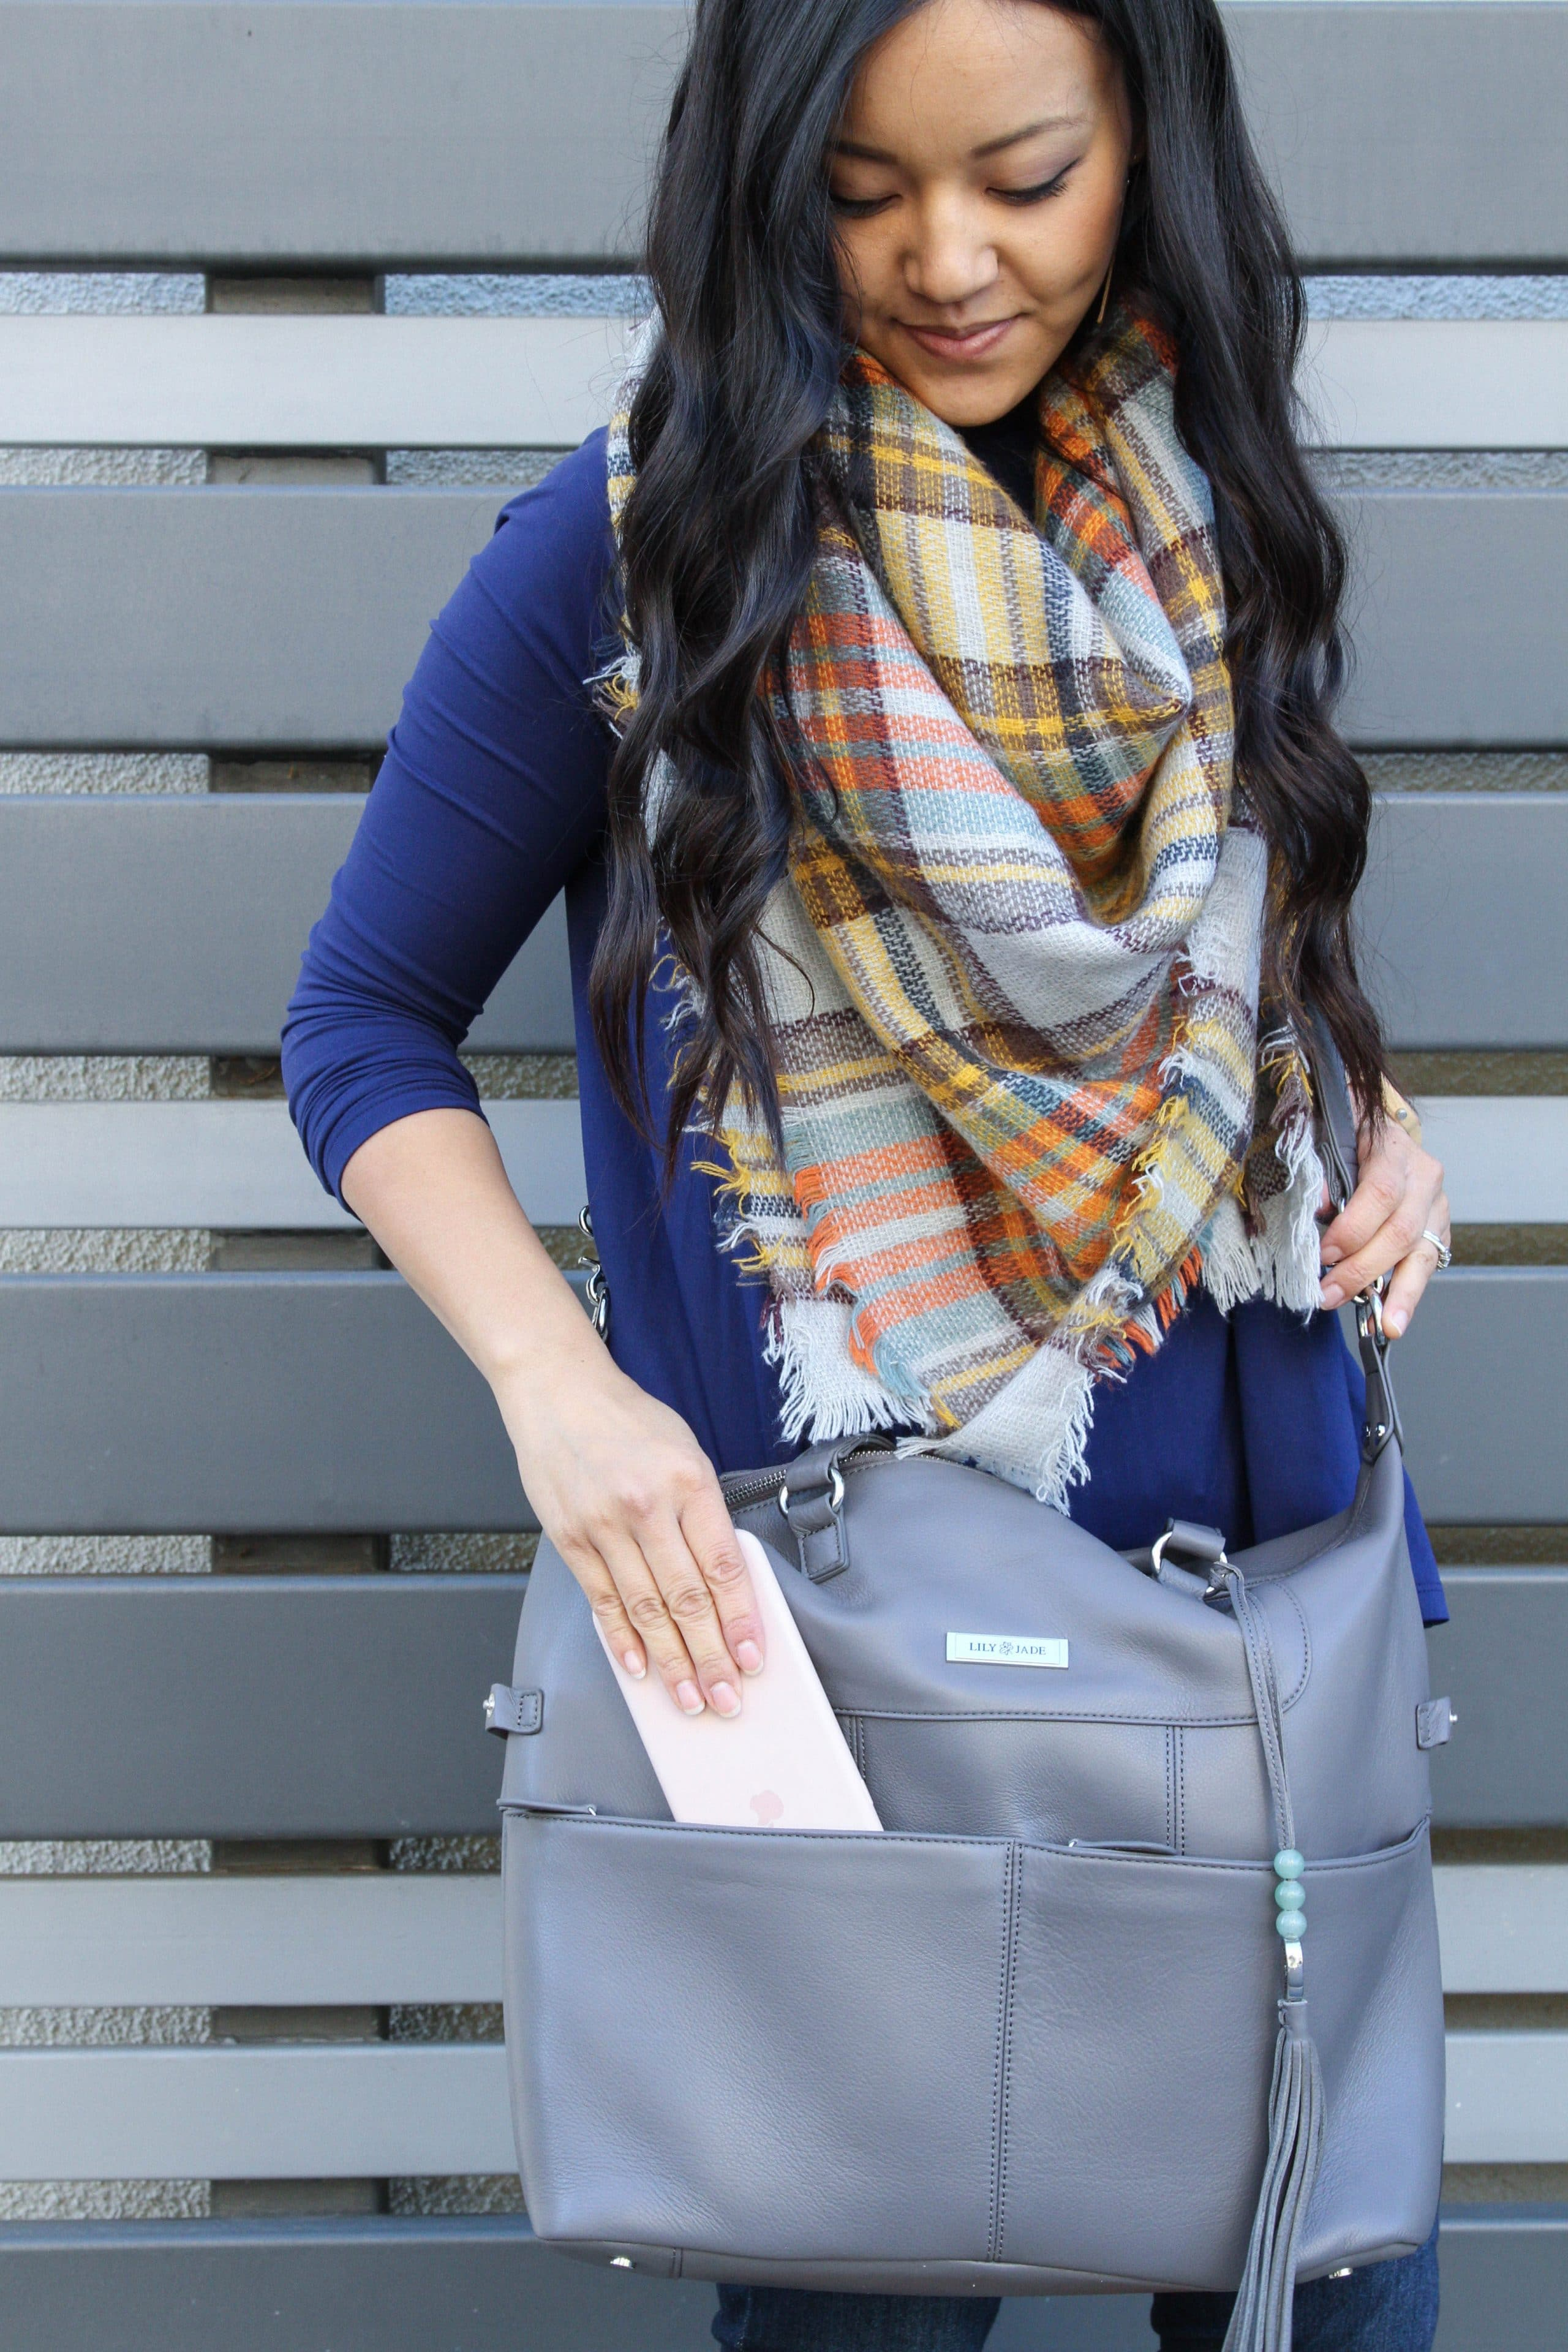 Travel Bag: Lily Jade + Blue Butter Tee + Blanket Scarf